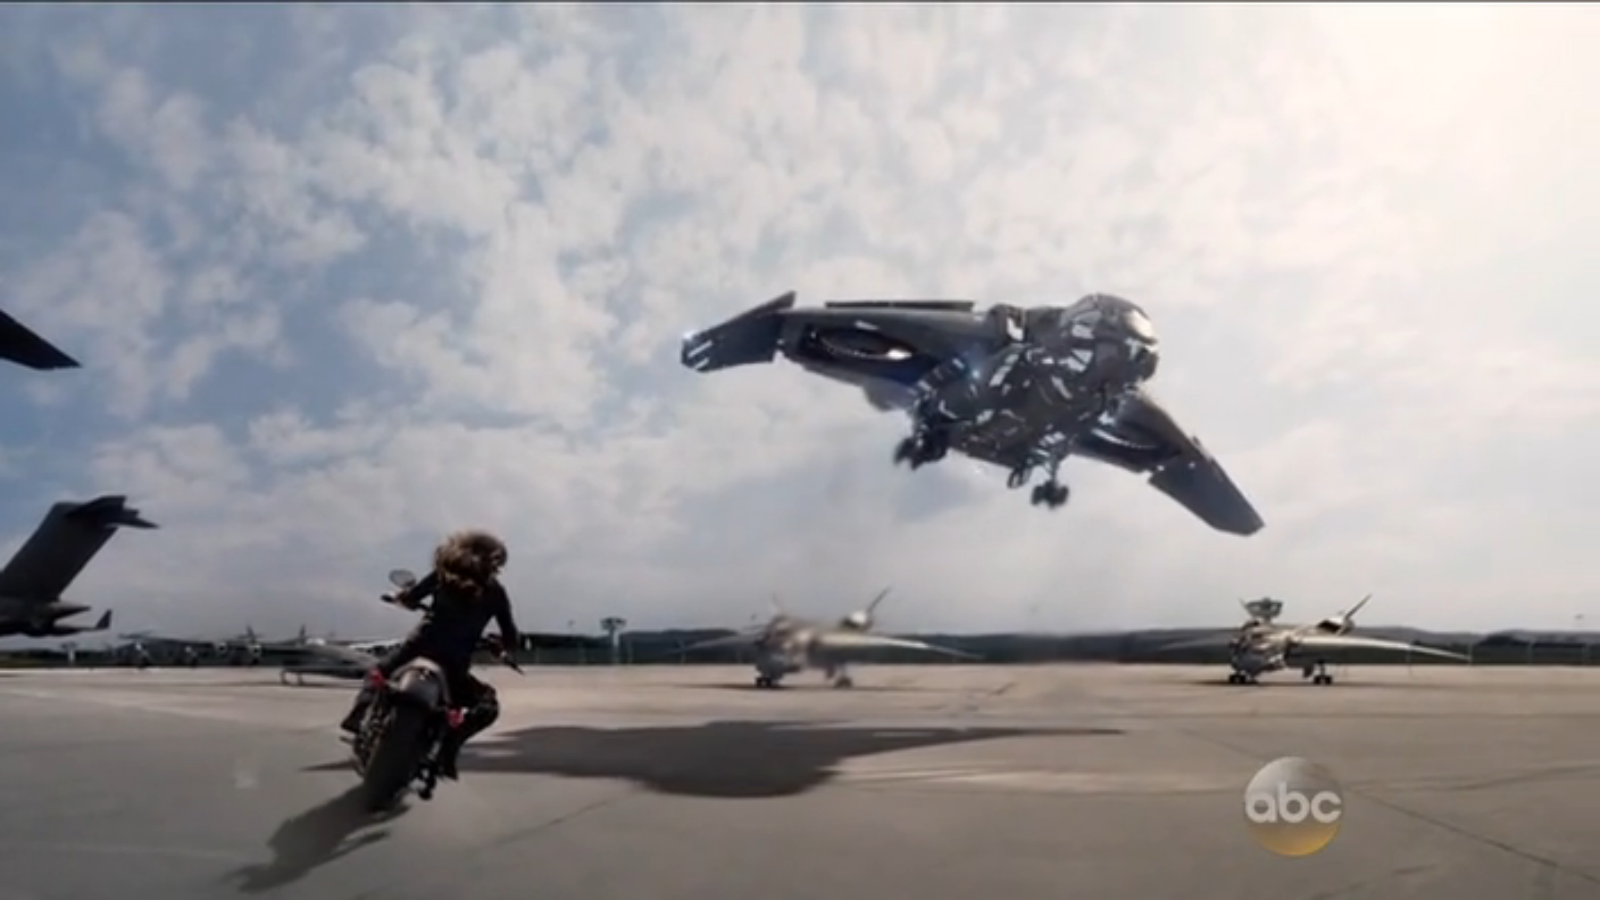 Quinjet activating cloak. Why didn't she catch a ride? Where did the motorcycle come from? No idea.